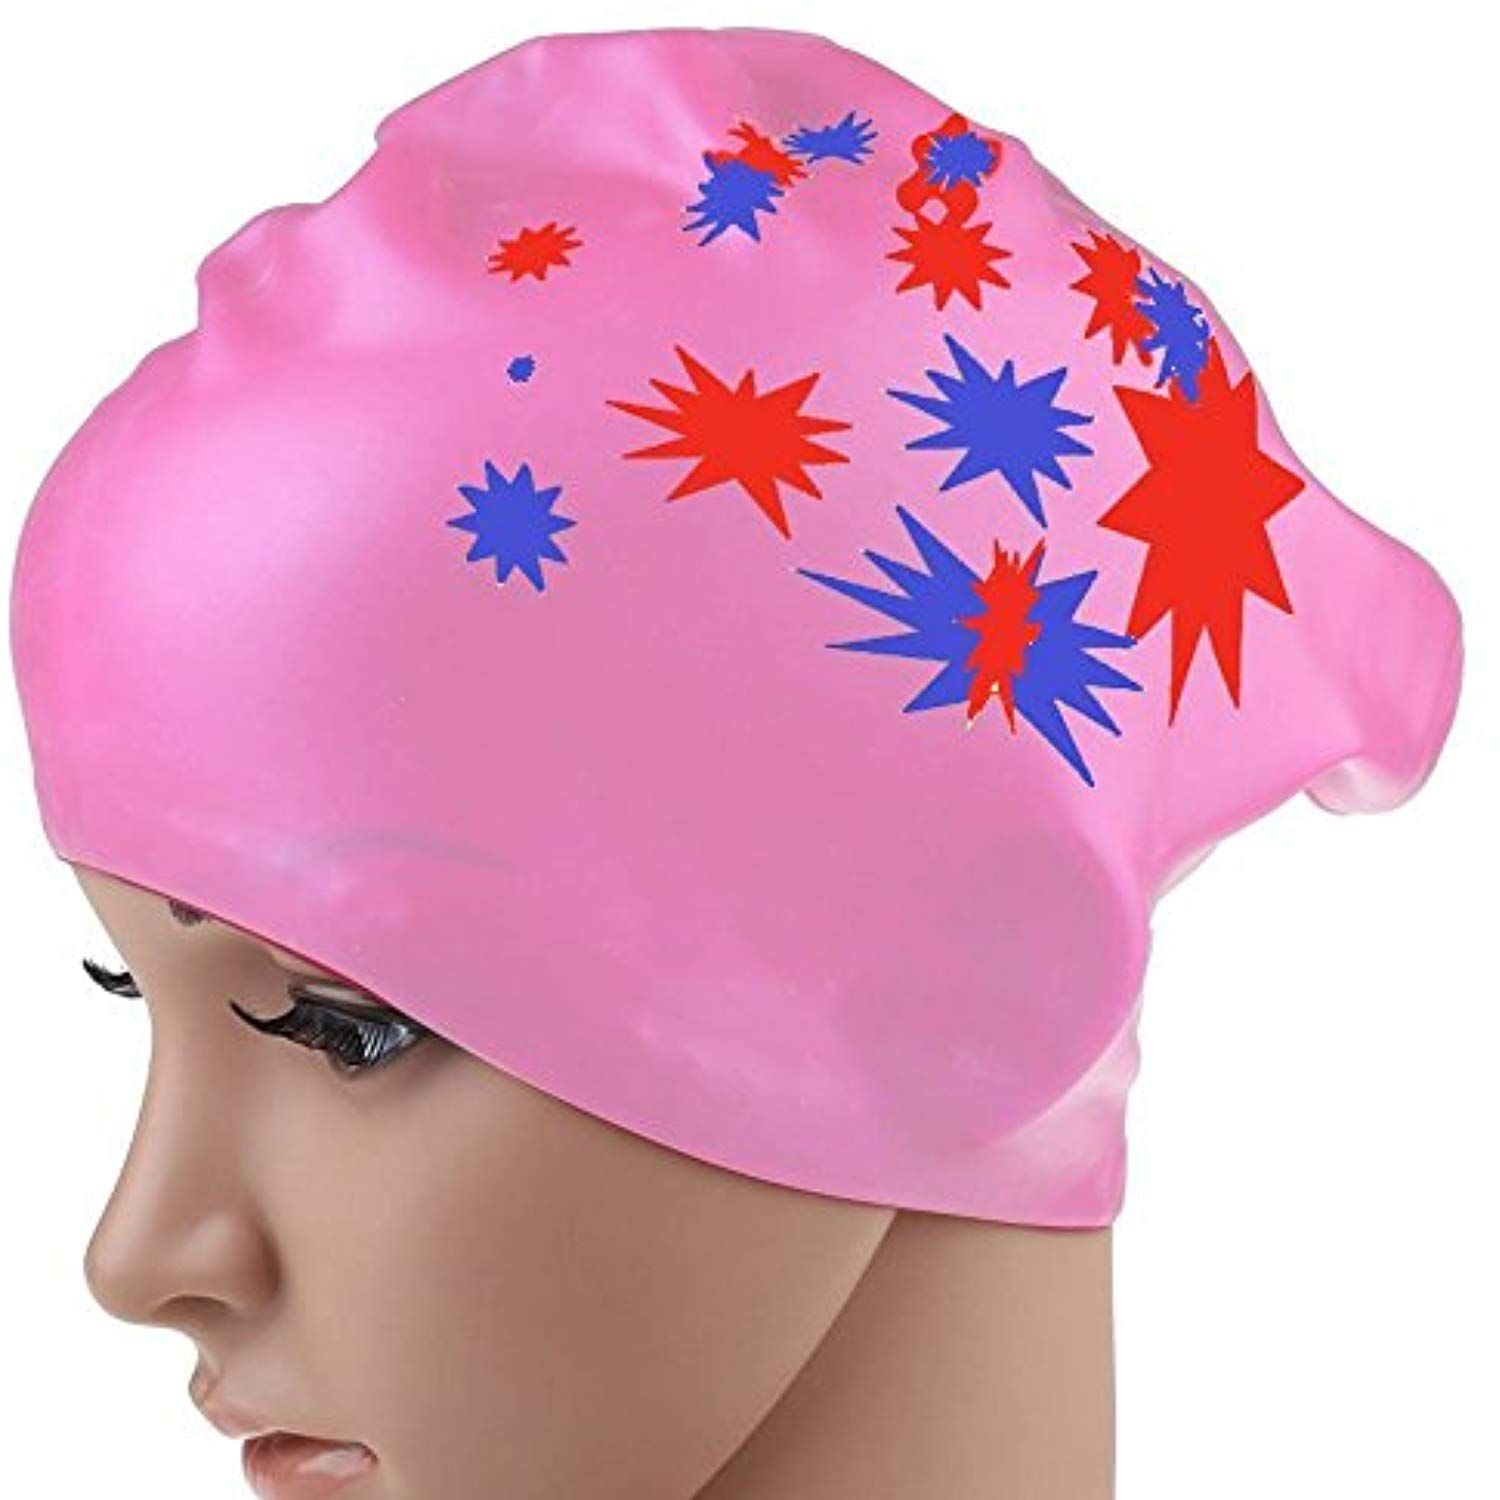 Eforstore 1pcs Waterproof Silicone Swimming Cap For Long Hair Women Perfact To Keep Thick Or Curly Hair Dry R Long Hair Women Dry Curly Hair Long Hair Styles